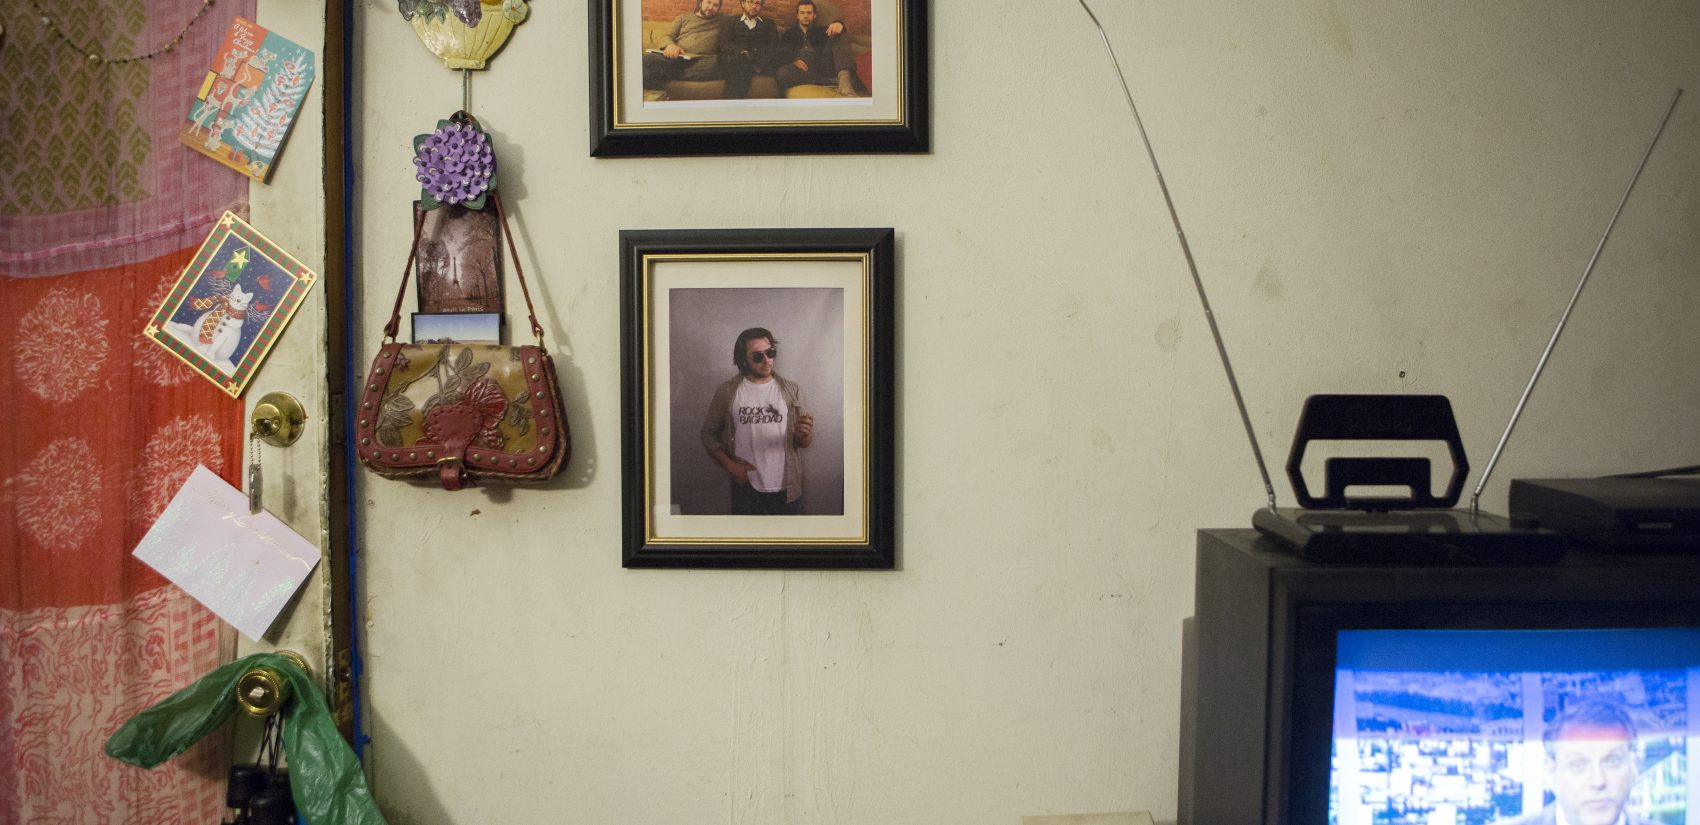 Photos of Josie Buriak's son Max hang on the wall of her living room in Pittsburgh. (Jessica Kourkounis/For Keystone Crossroads)